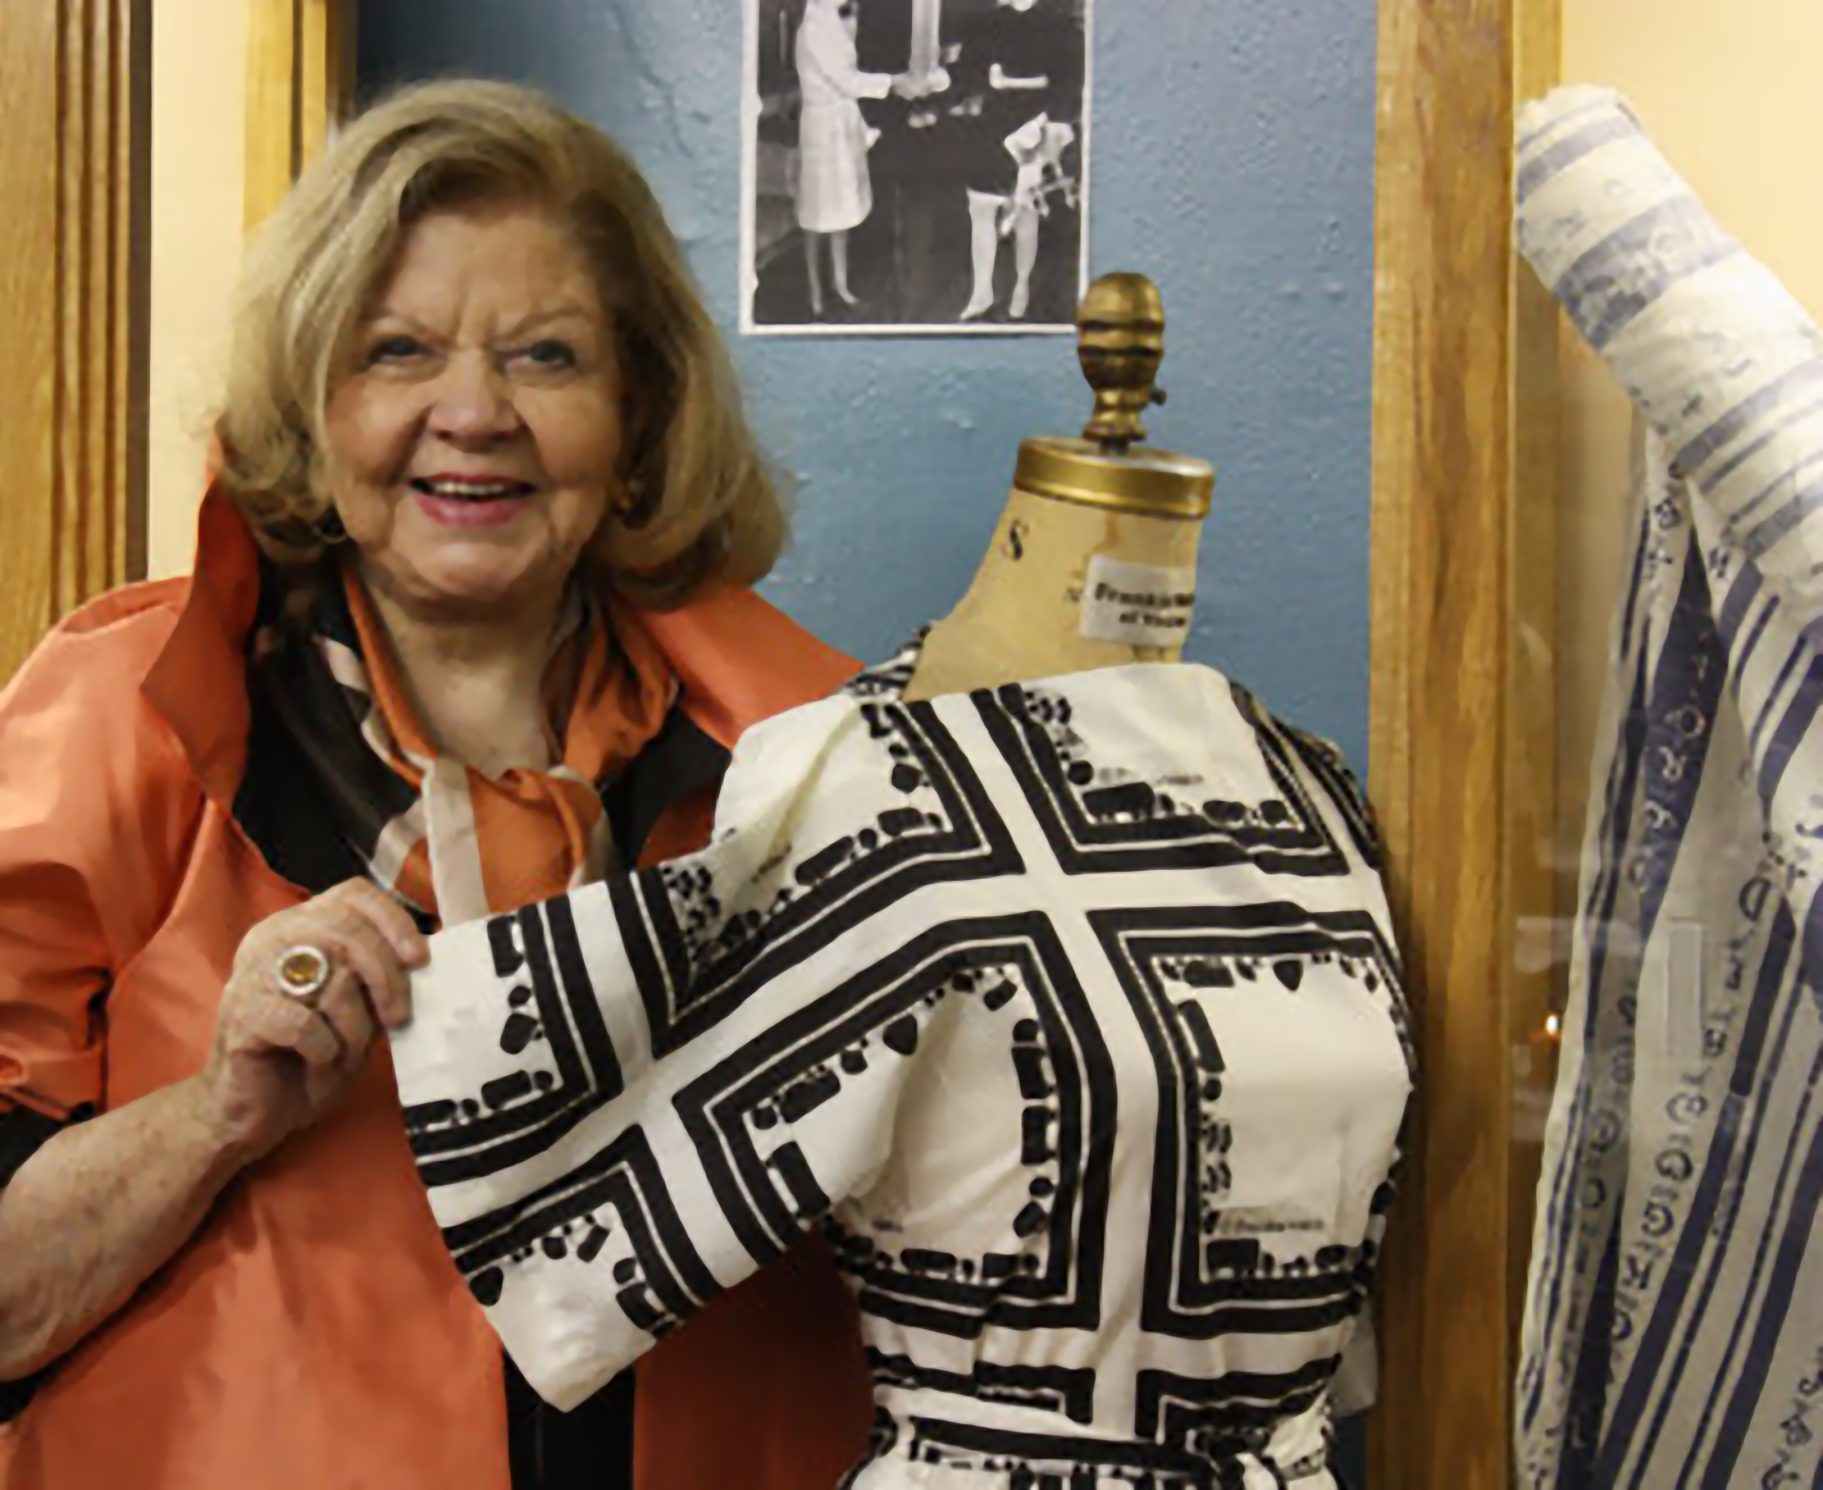 Frankie Welch with one of her Cherokee designs. Welch's designs are also inspired by her Cherokee heritage. One of her most well-known patterns features the Cherokee alphabet. Welch explained in a 1968 feature article that she had always been fascinated by the Cherokee syllabary. The beautiful designs of the letters soon covered her scarves and dresses. (Courtesy photo)